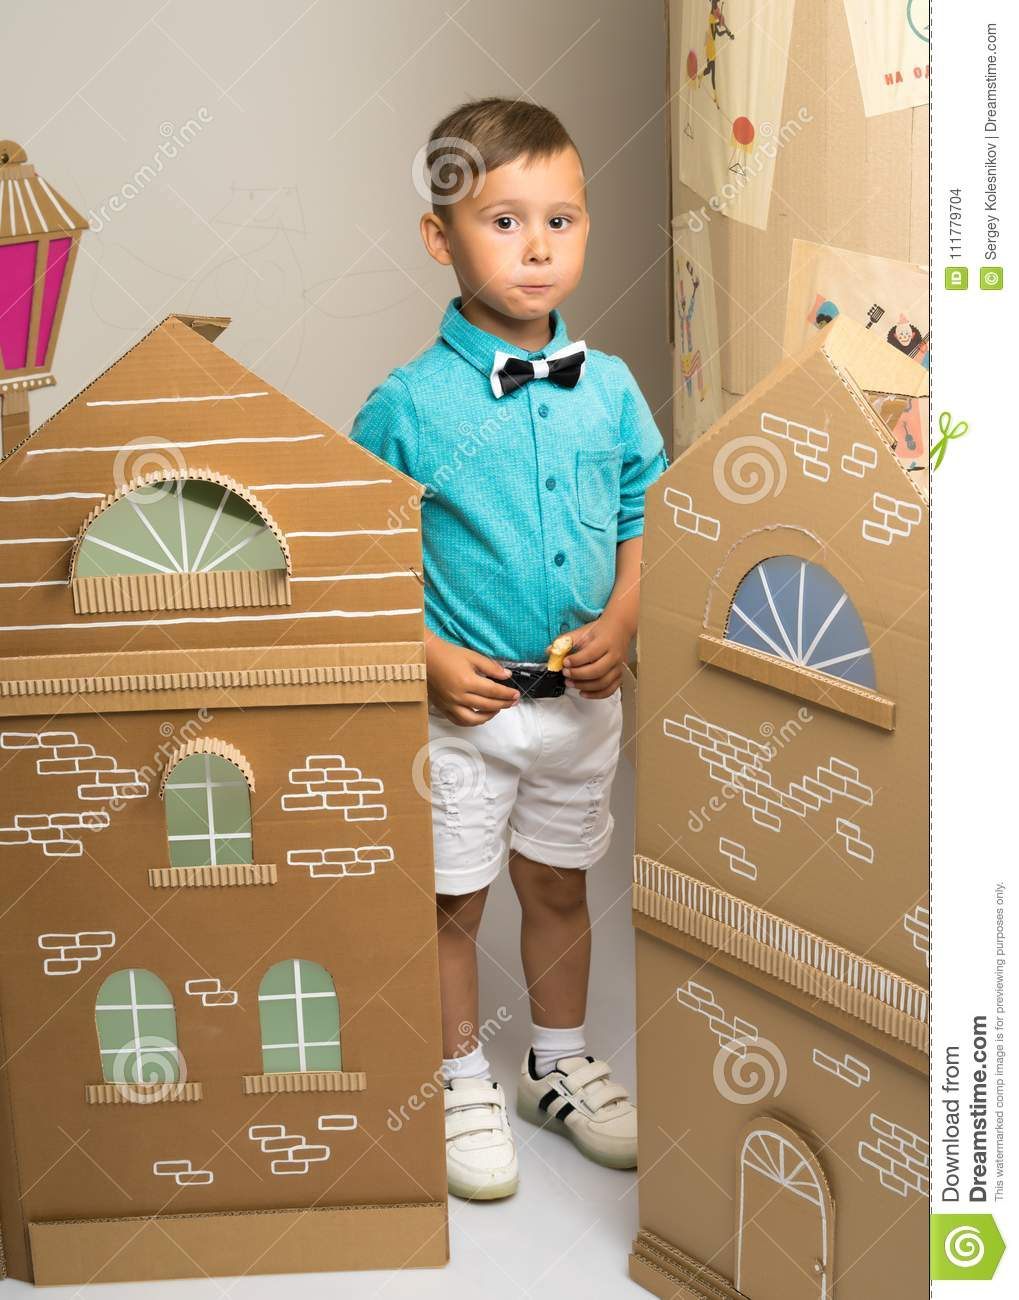 A little boy is playing with colorful houses.